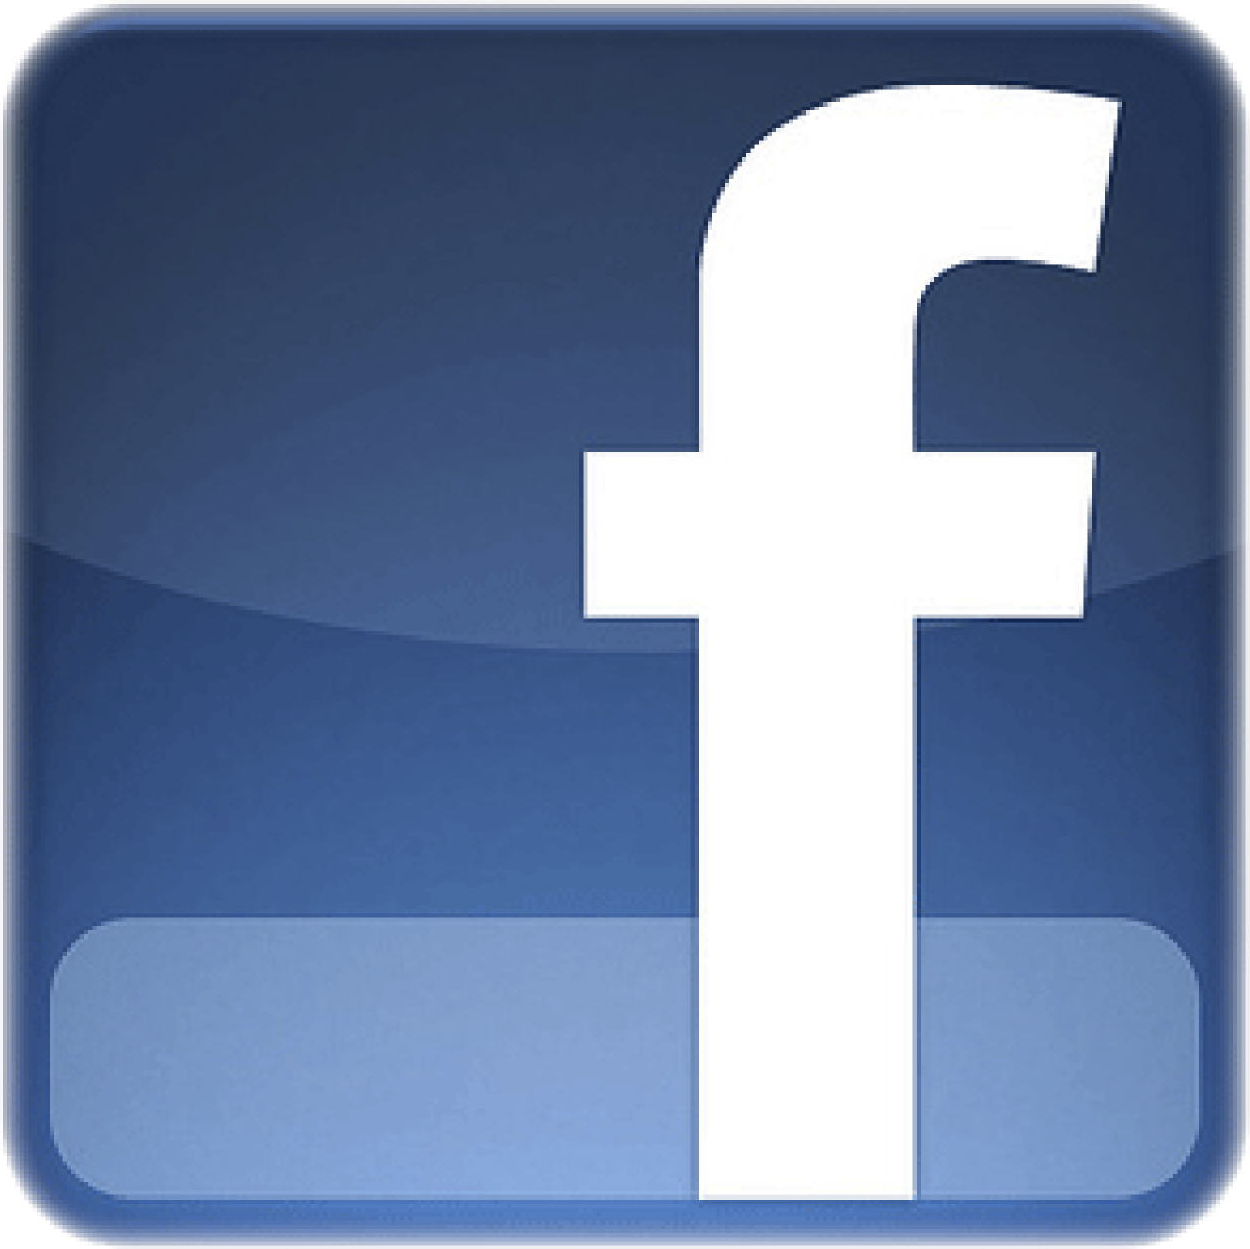 Like Or Share Facebook Logo Png On Facebook image #27